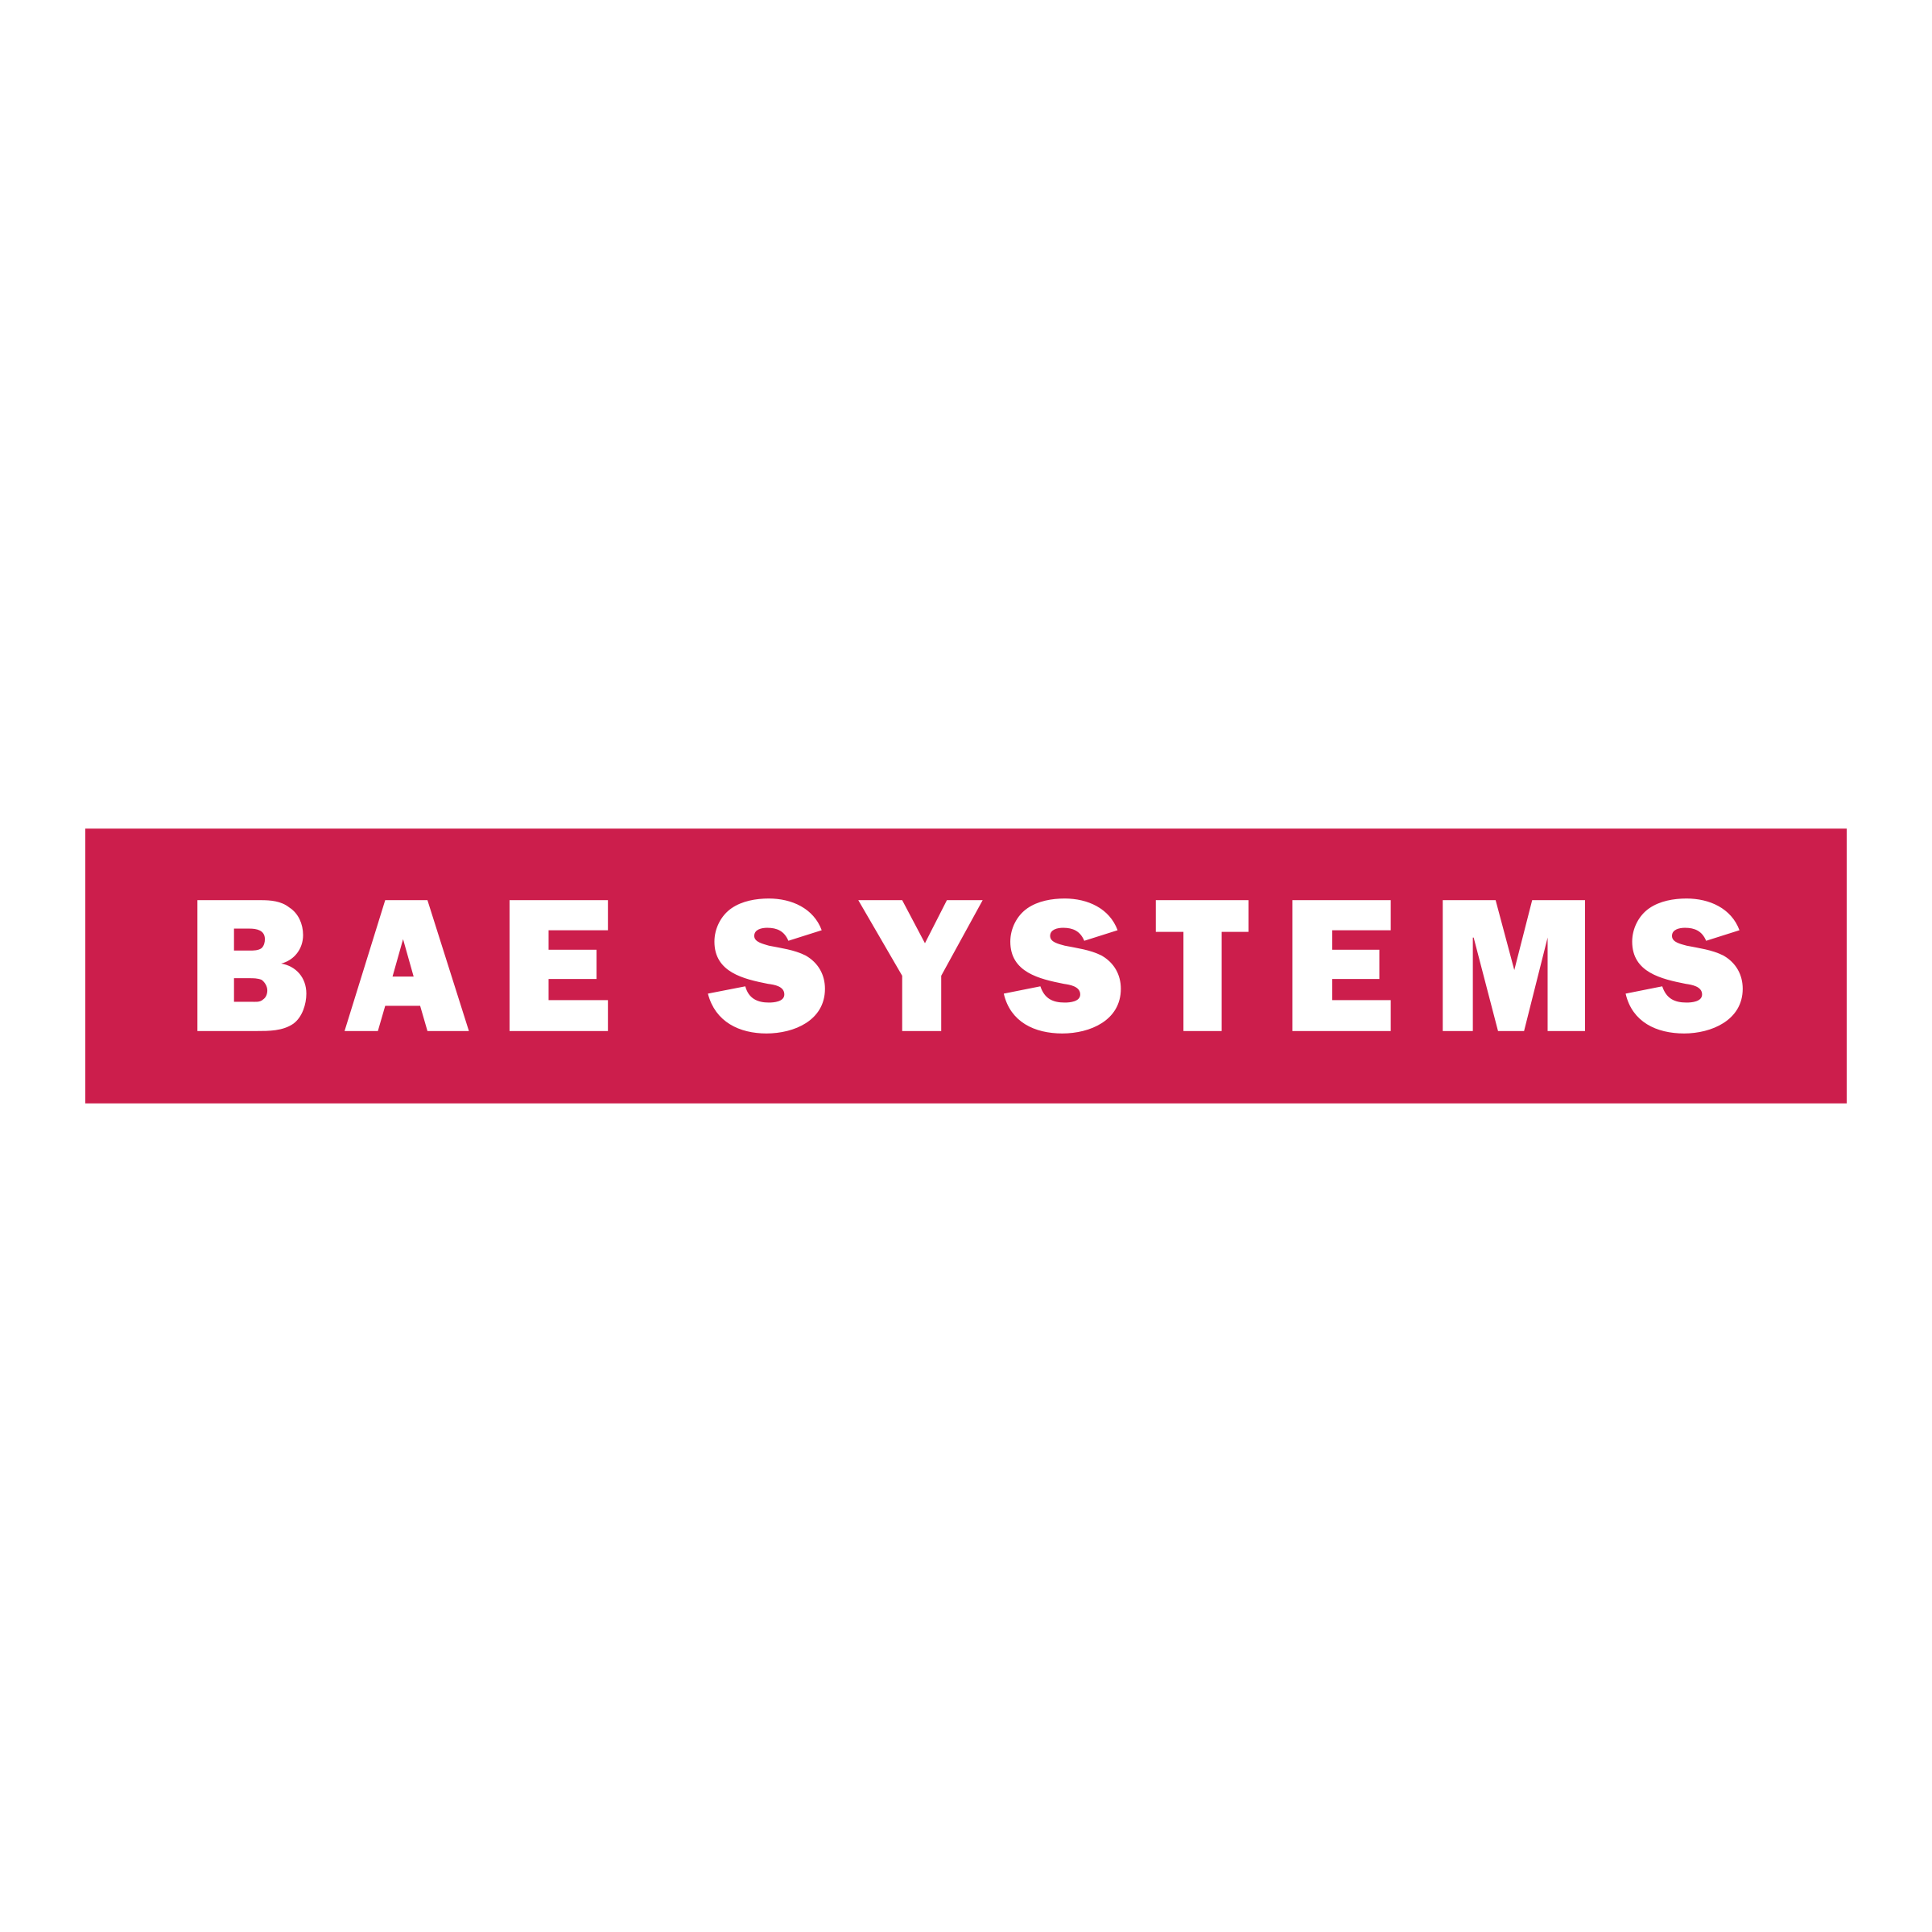 BAE Systems Logo PNG Transparent & SVG Vector.